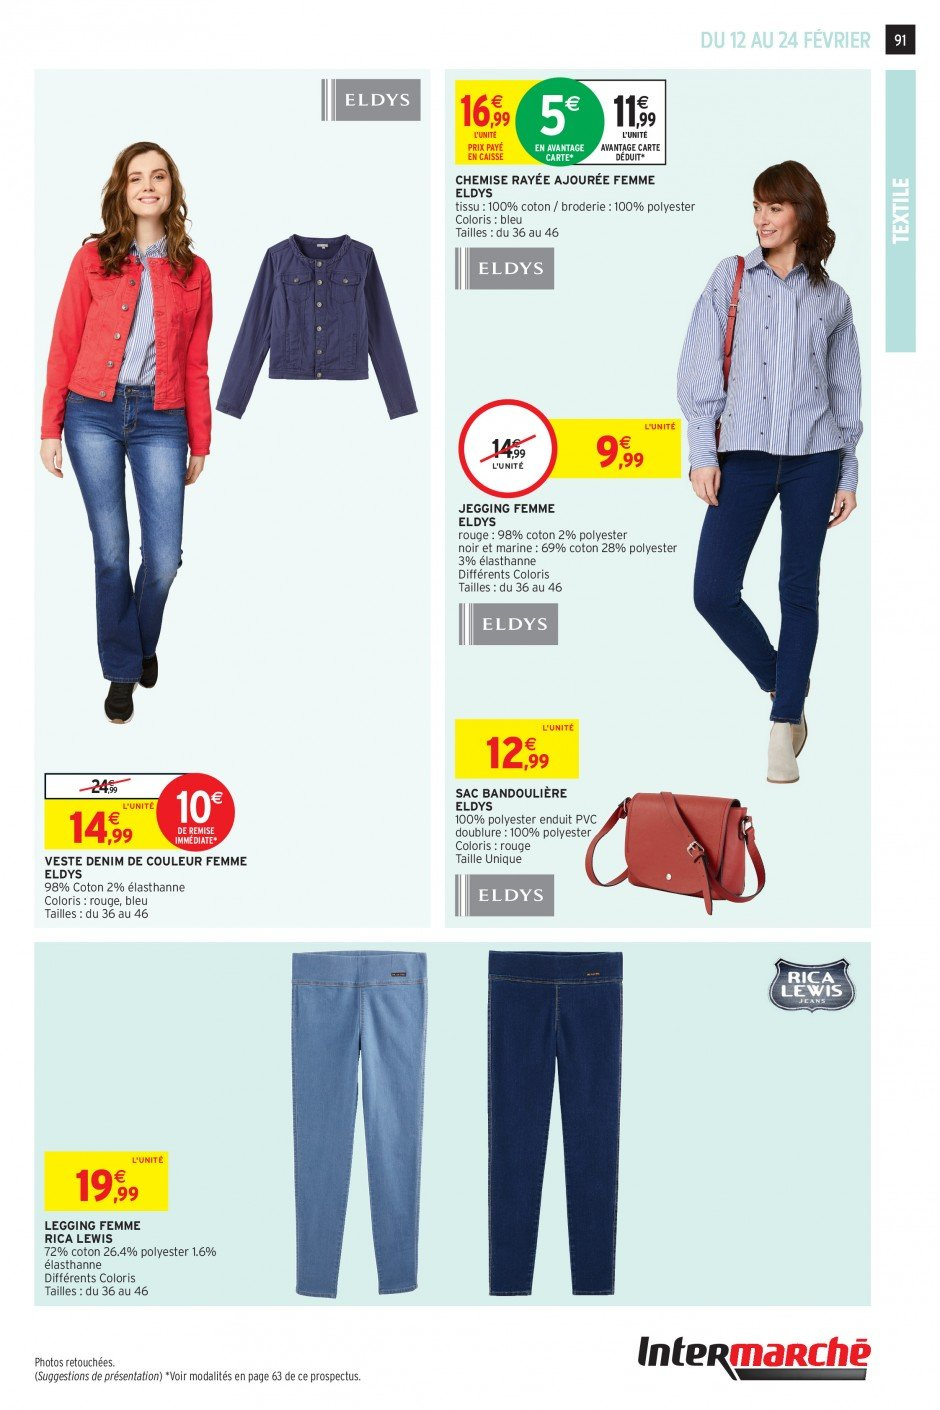 Catalogue Intermarché - 12.02.2019 - 24.02.2019. Page 89.